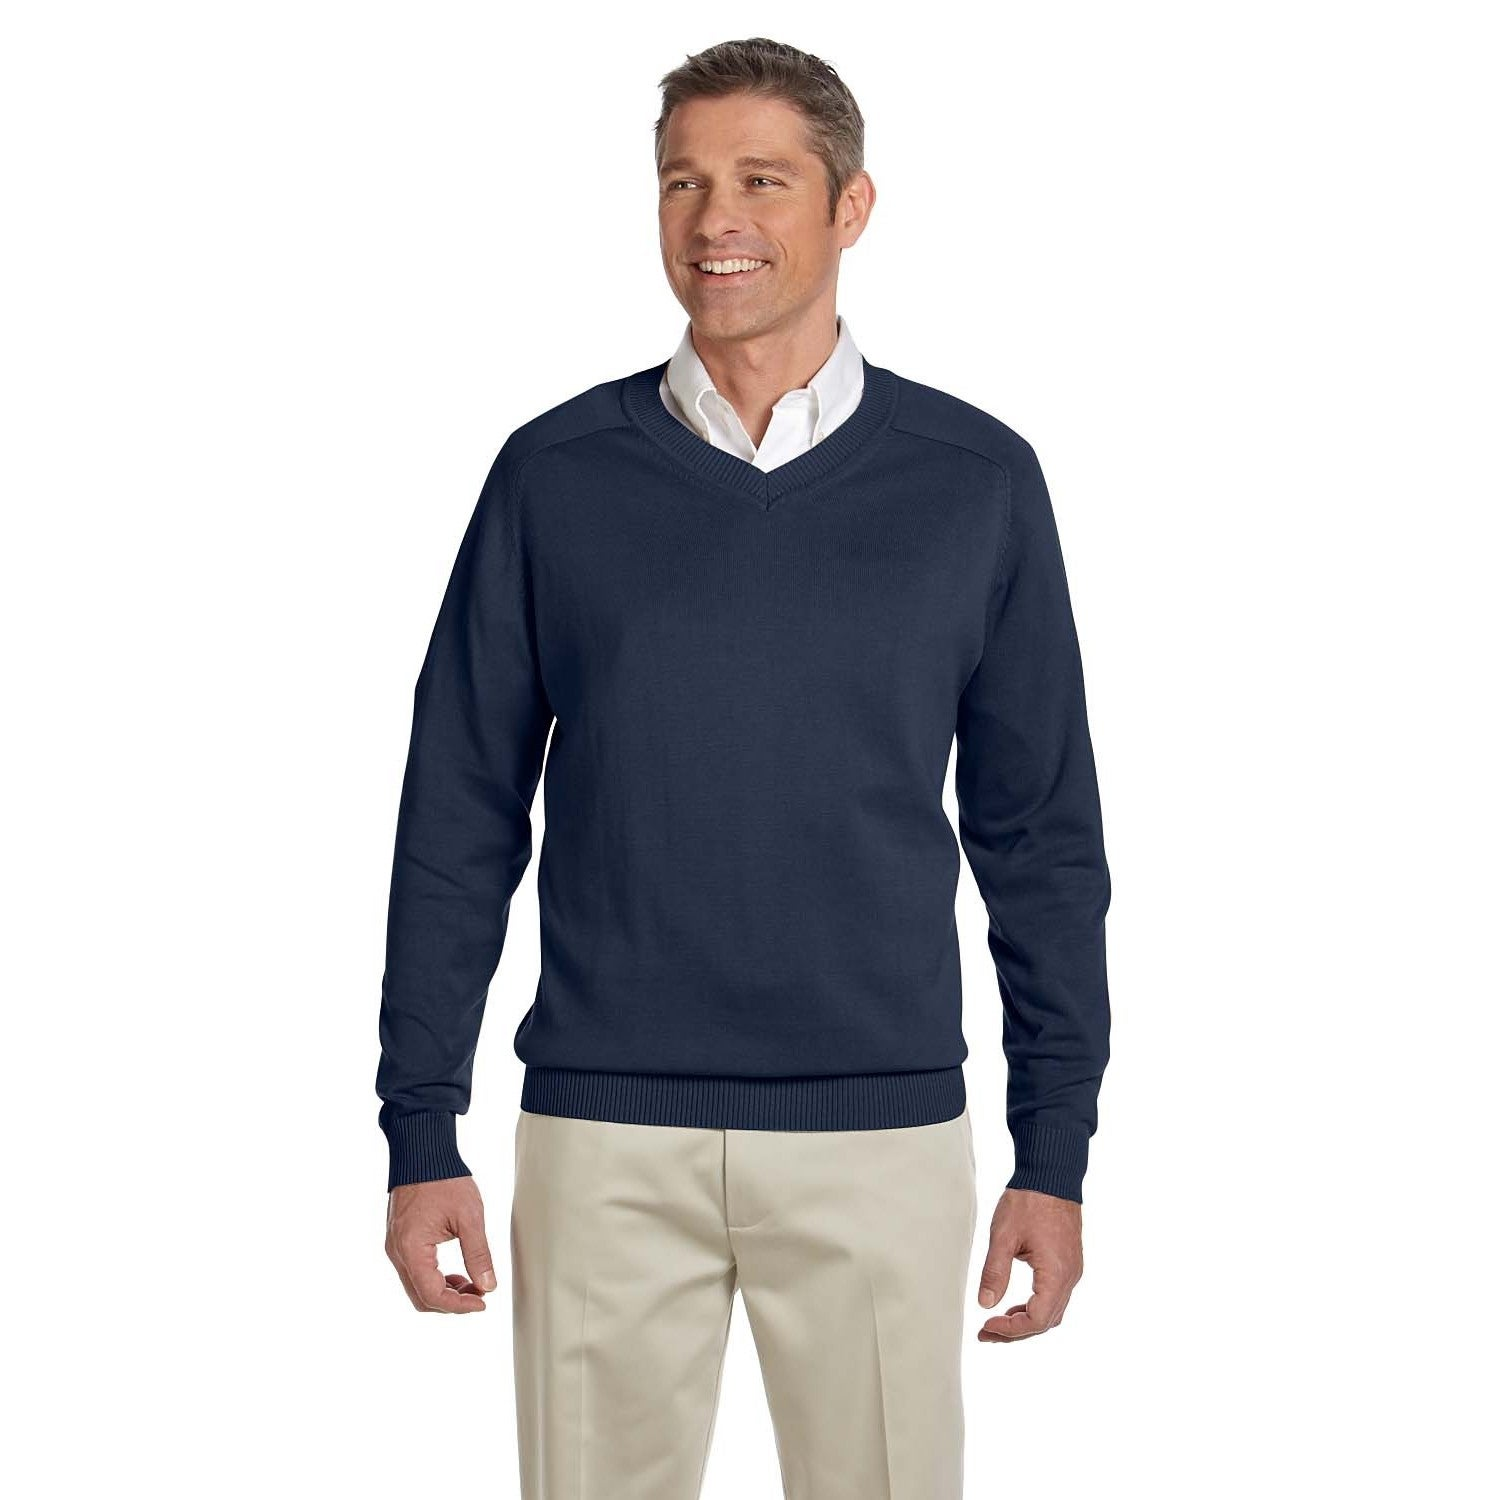 Shop Mens Big And Tall Navy Blue Cotton V Neck Sweater On Sale